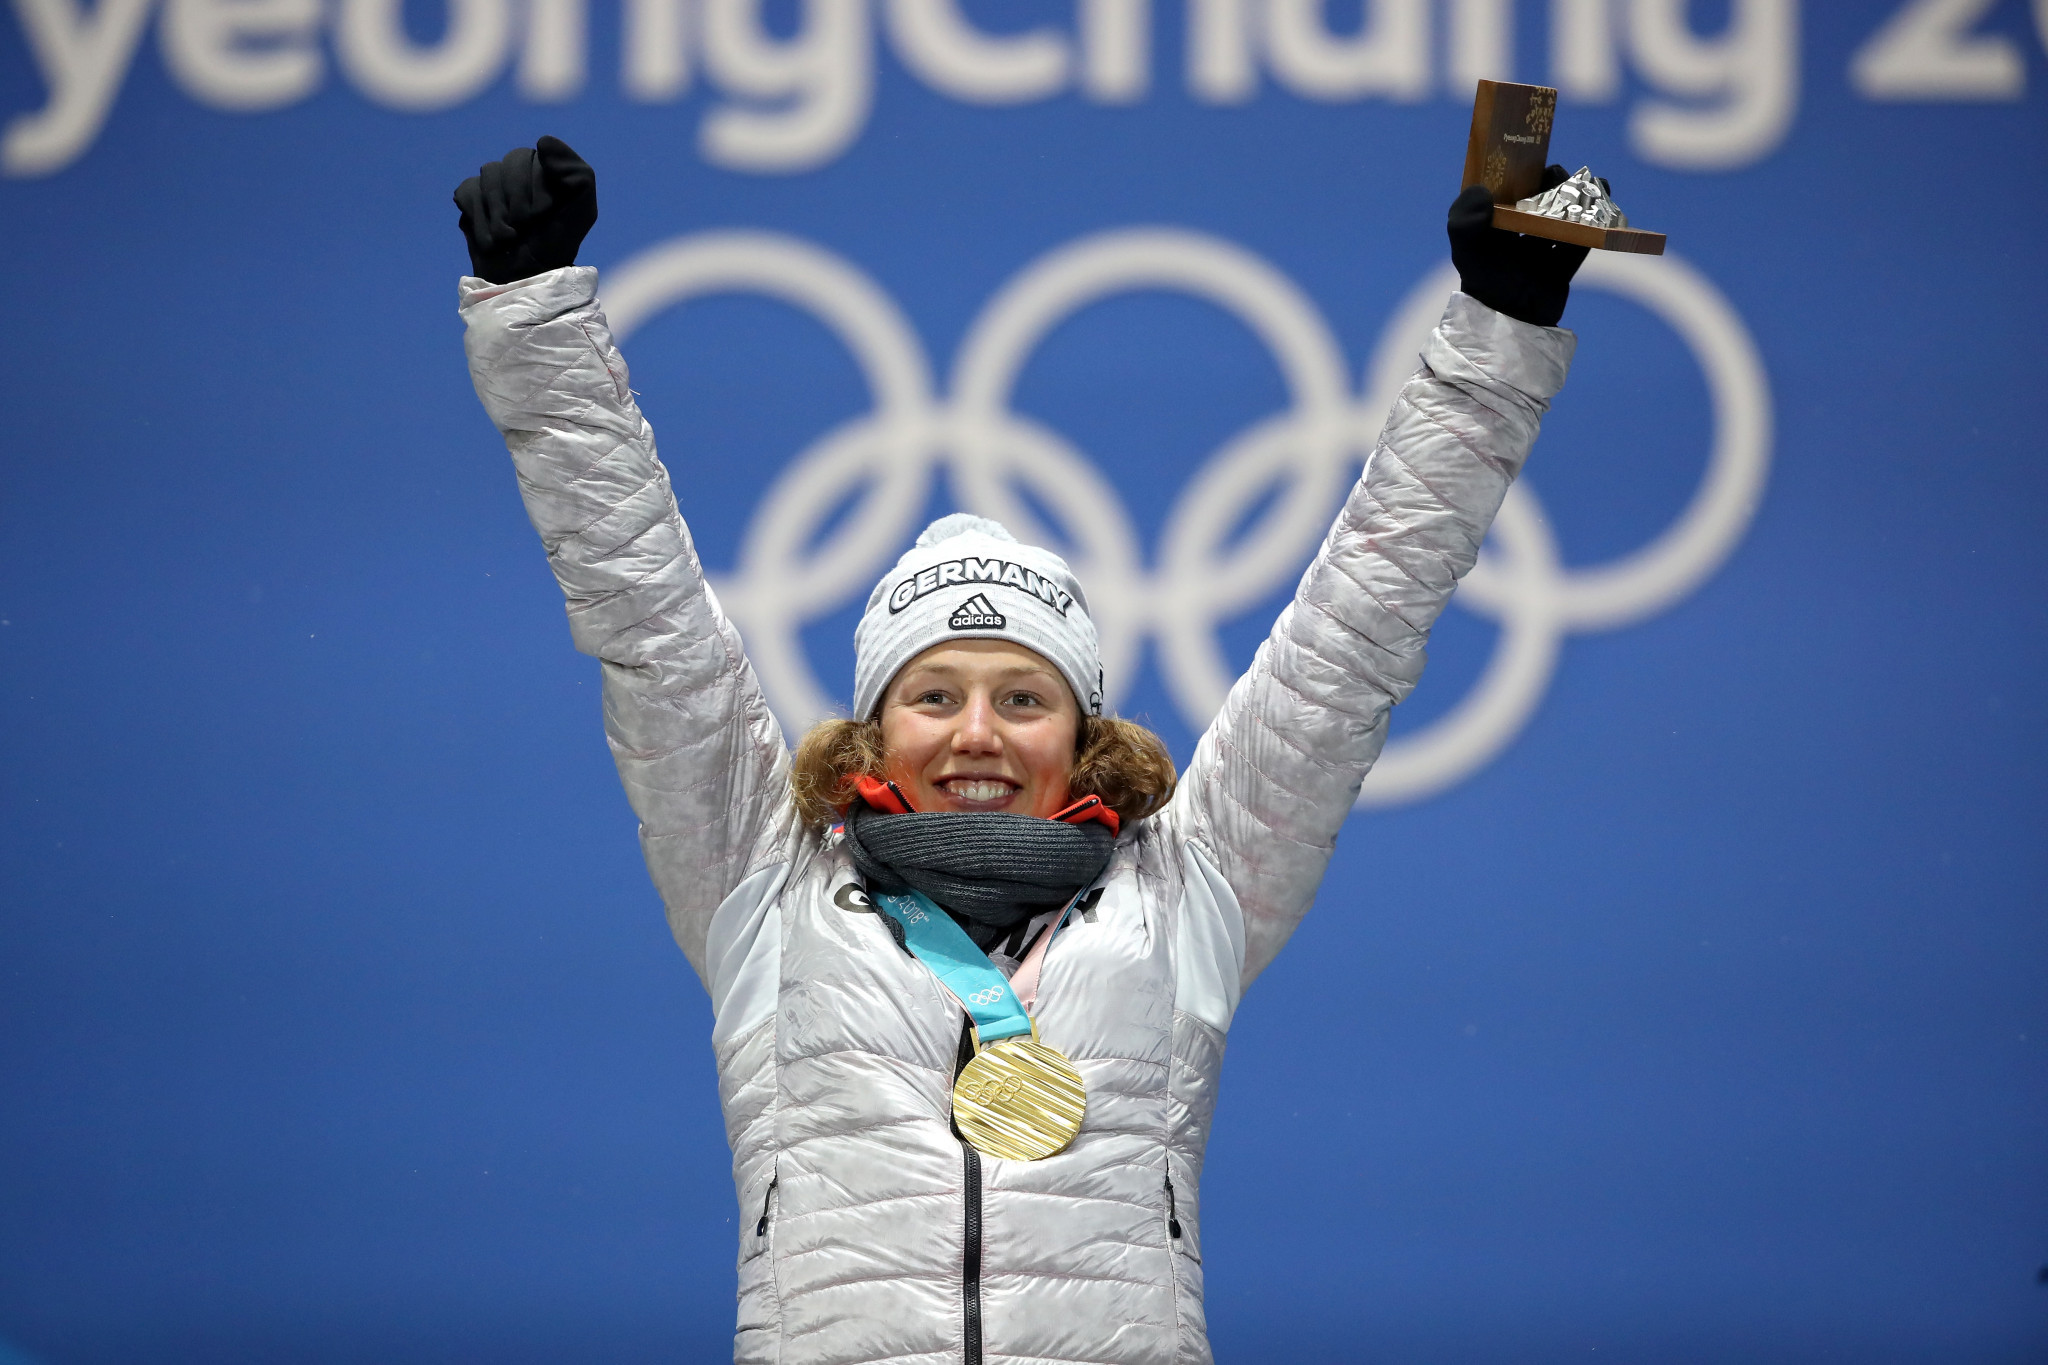 Laura Dahlmeier is an athlete representative on the sustainability group ©Getty Images